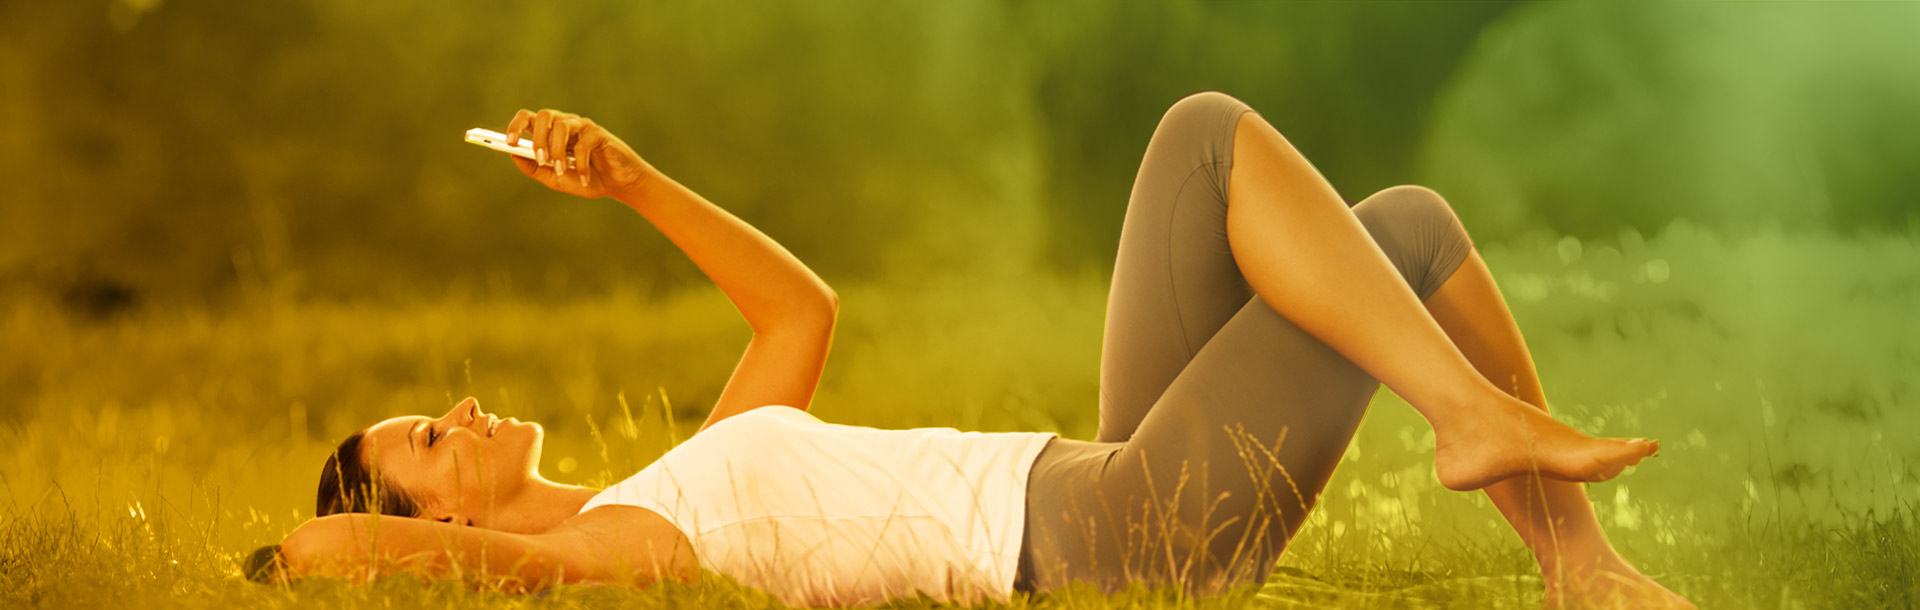 Woman laying on the grass considering a loan on her mobile phone